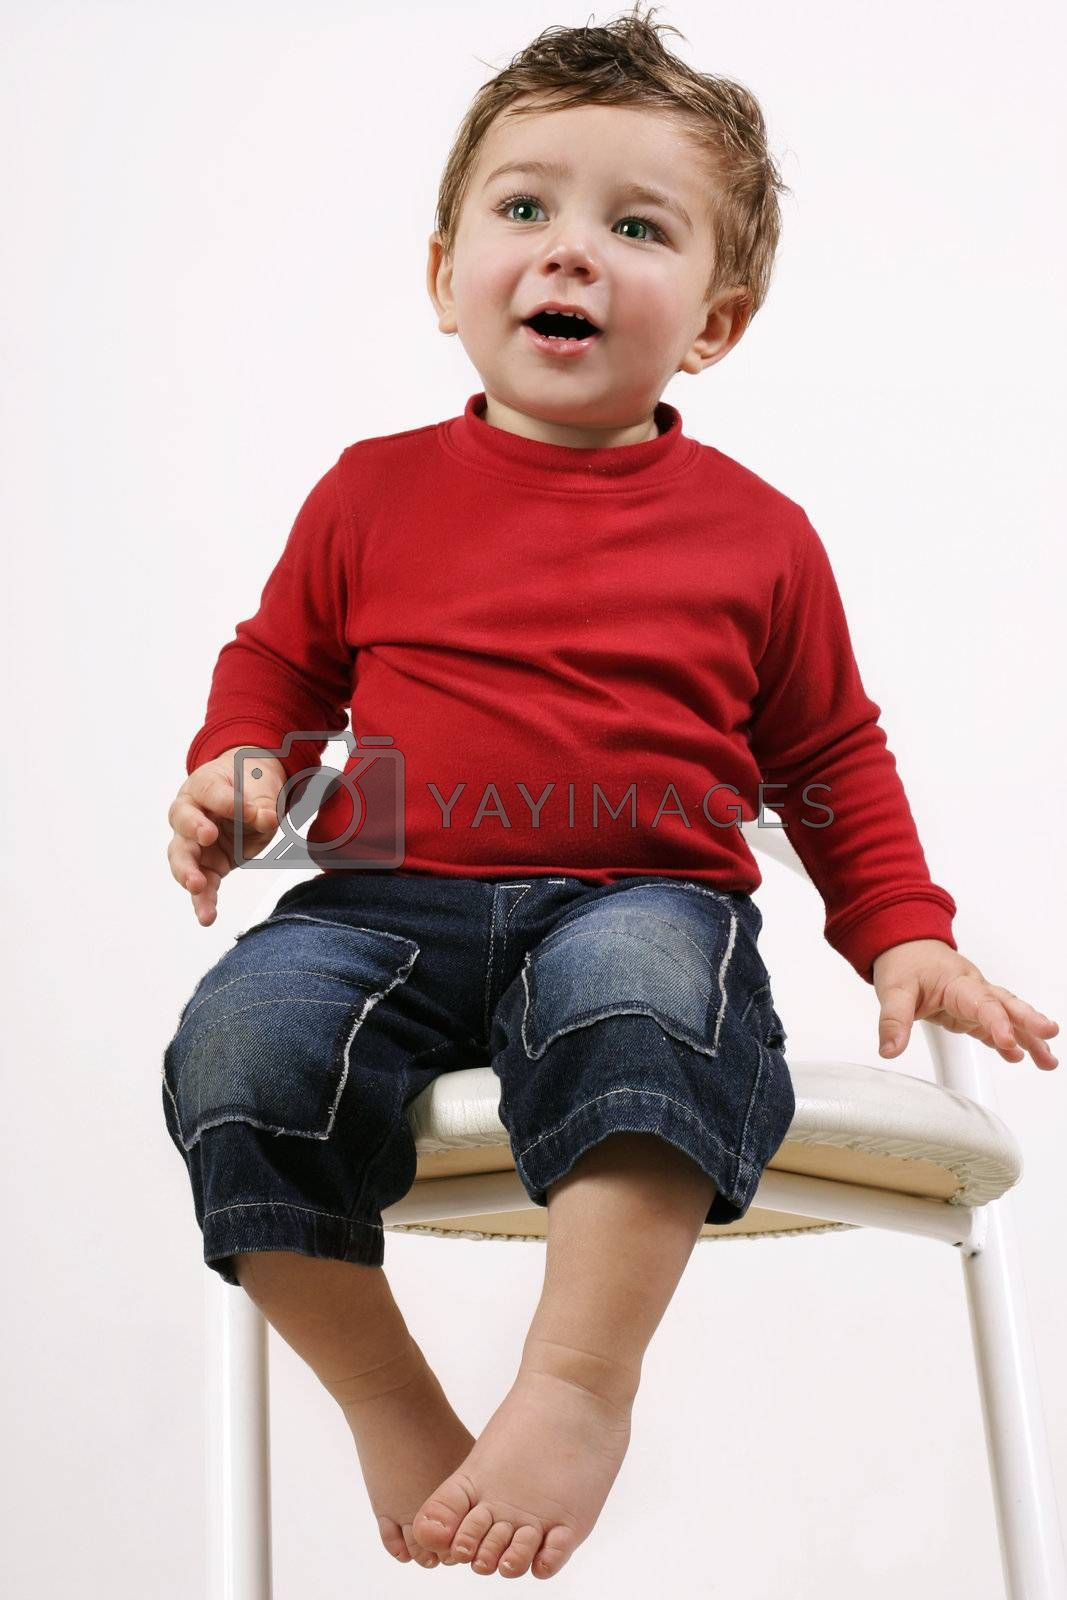 Adorable young toddler sitting on a white stool